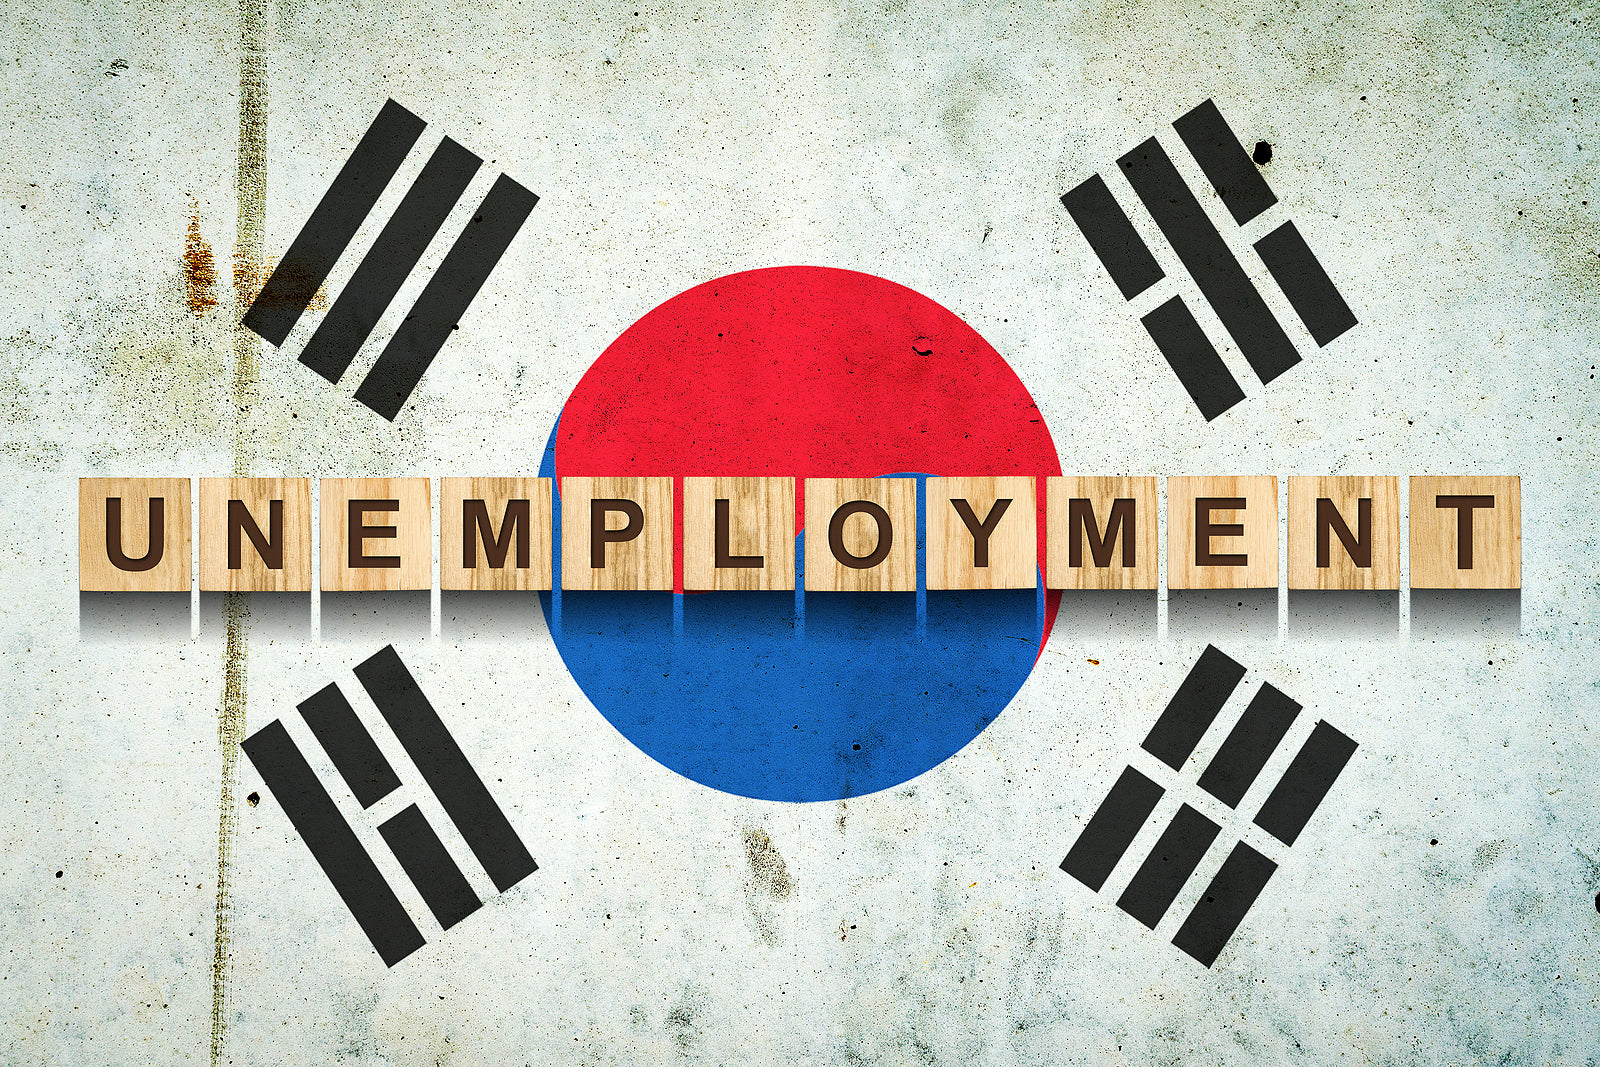 [Korea] January payroll shows biggest loss in 22 years as unemployment soars